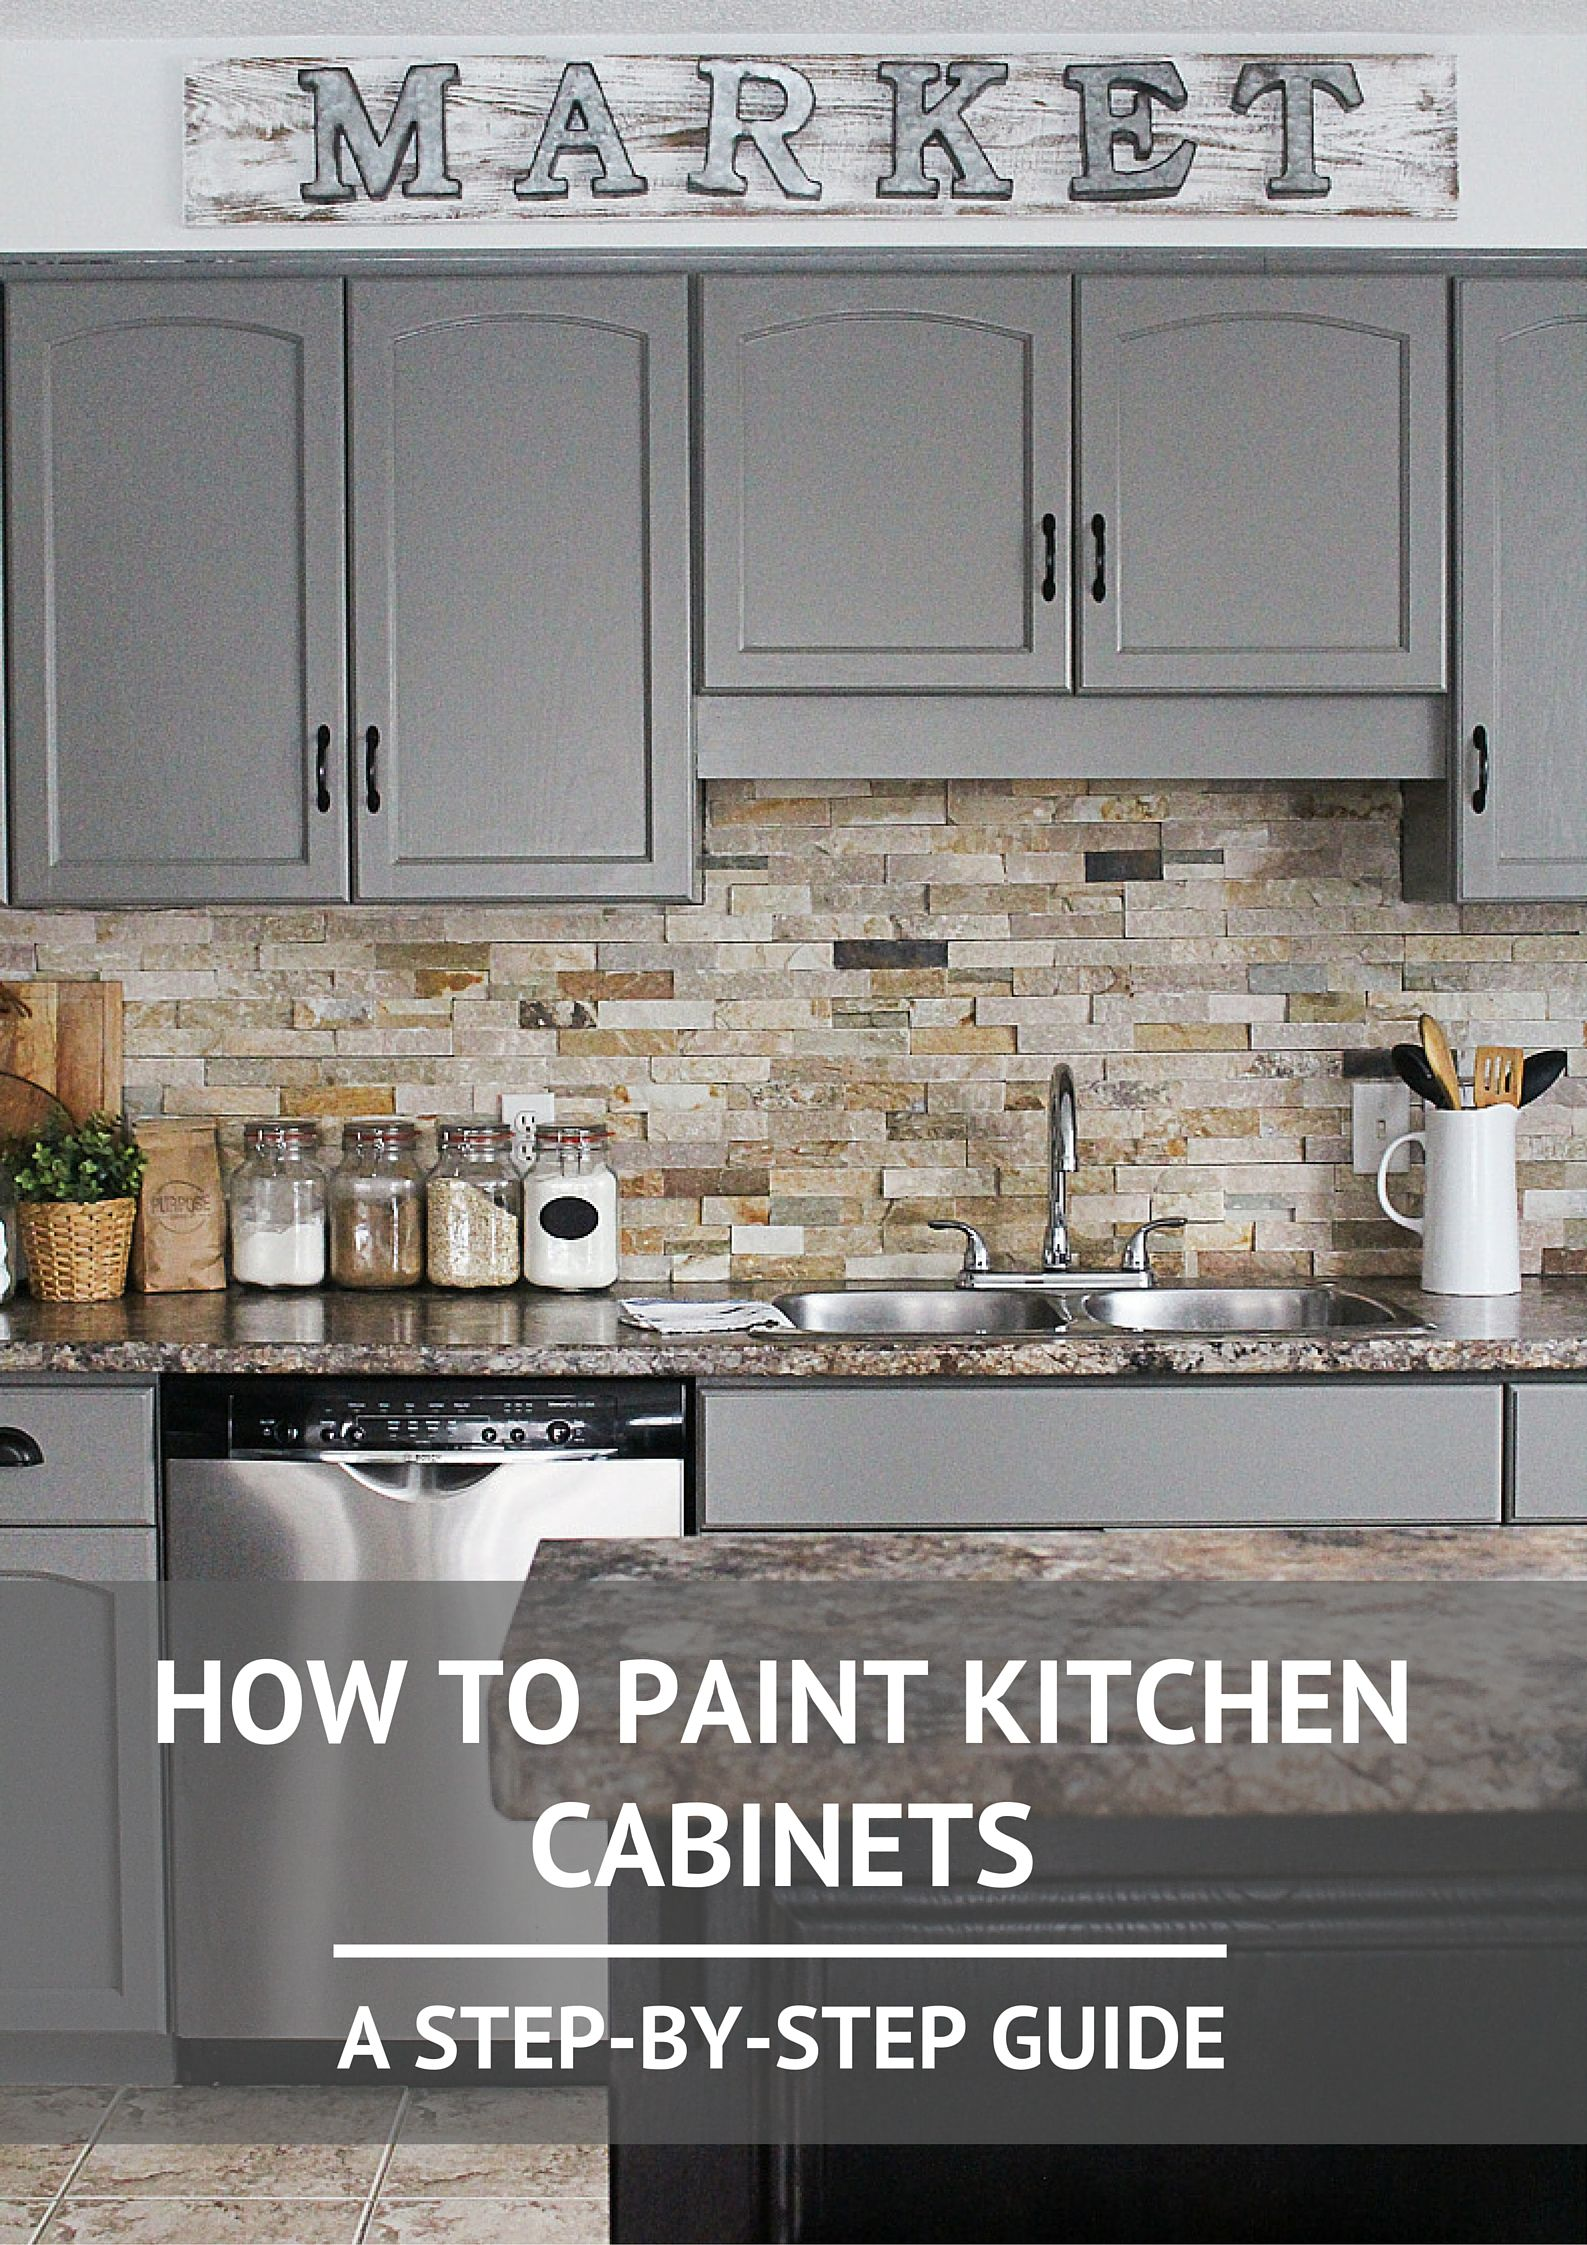 How To Paint Kitchen Cabinets With Images Kitchen Cabinets Makeover Home Kitchens Diy Kitchen